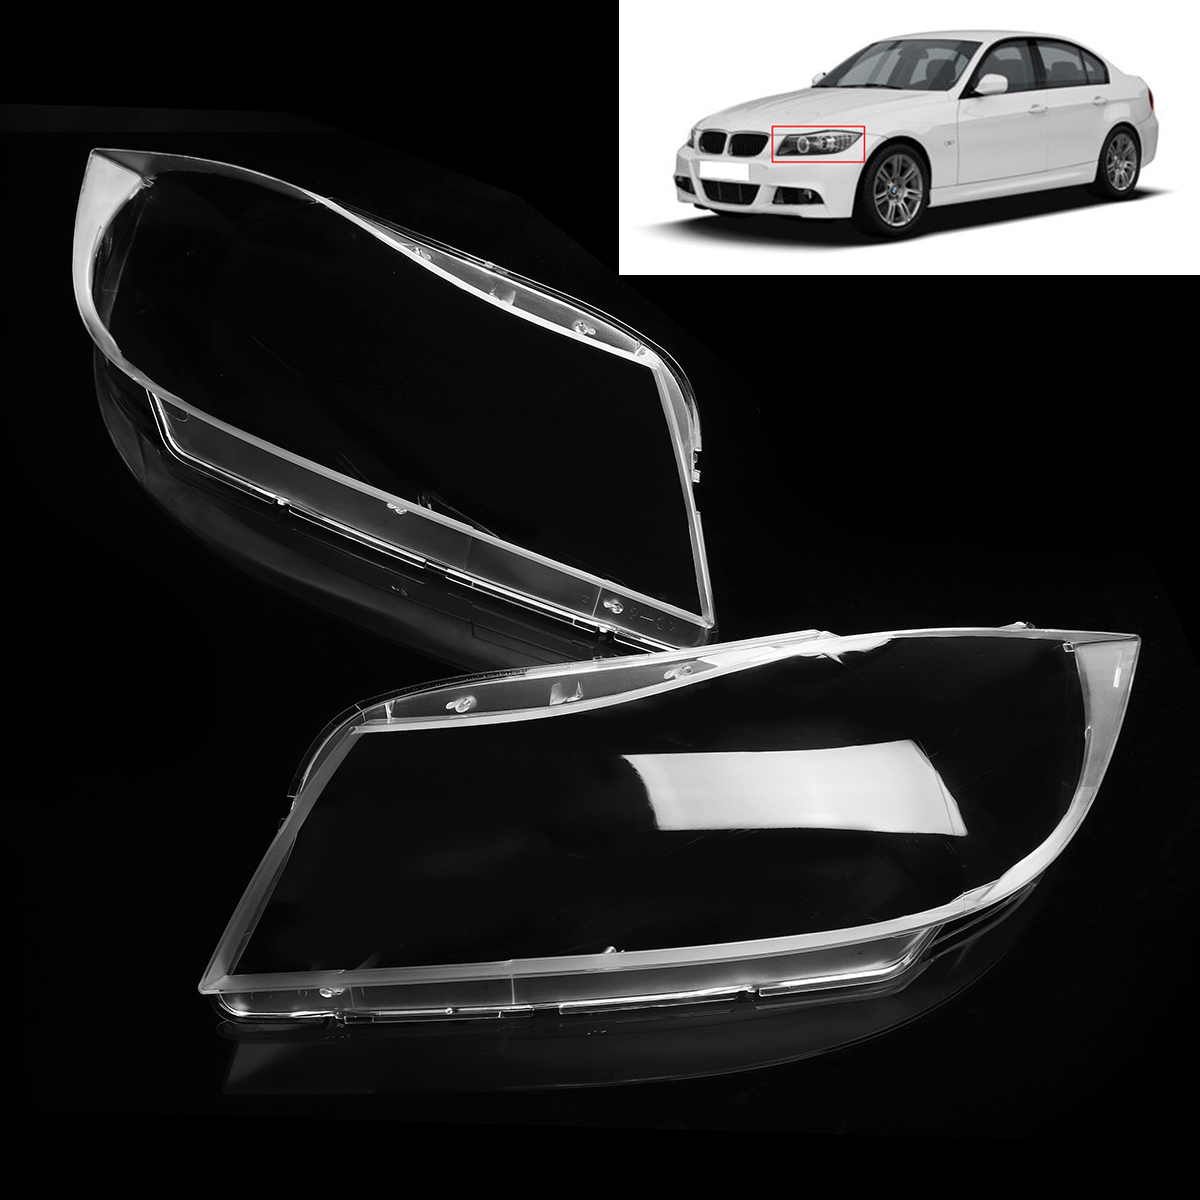 2Pcs Polycarbonate Headlamp Headlight Clear Lens Replacement Covers Case Shell Only XENON for BMW 3 E90 Sedan / E91 Touring 2pcs polycarbonate headlamp headlight clear lens replacement covers case shell only xenon for bmw 3 e90 sedan e91 touring